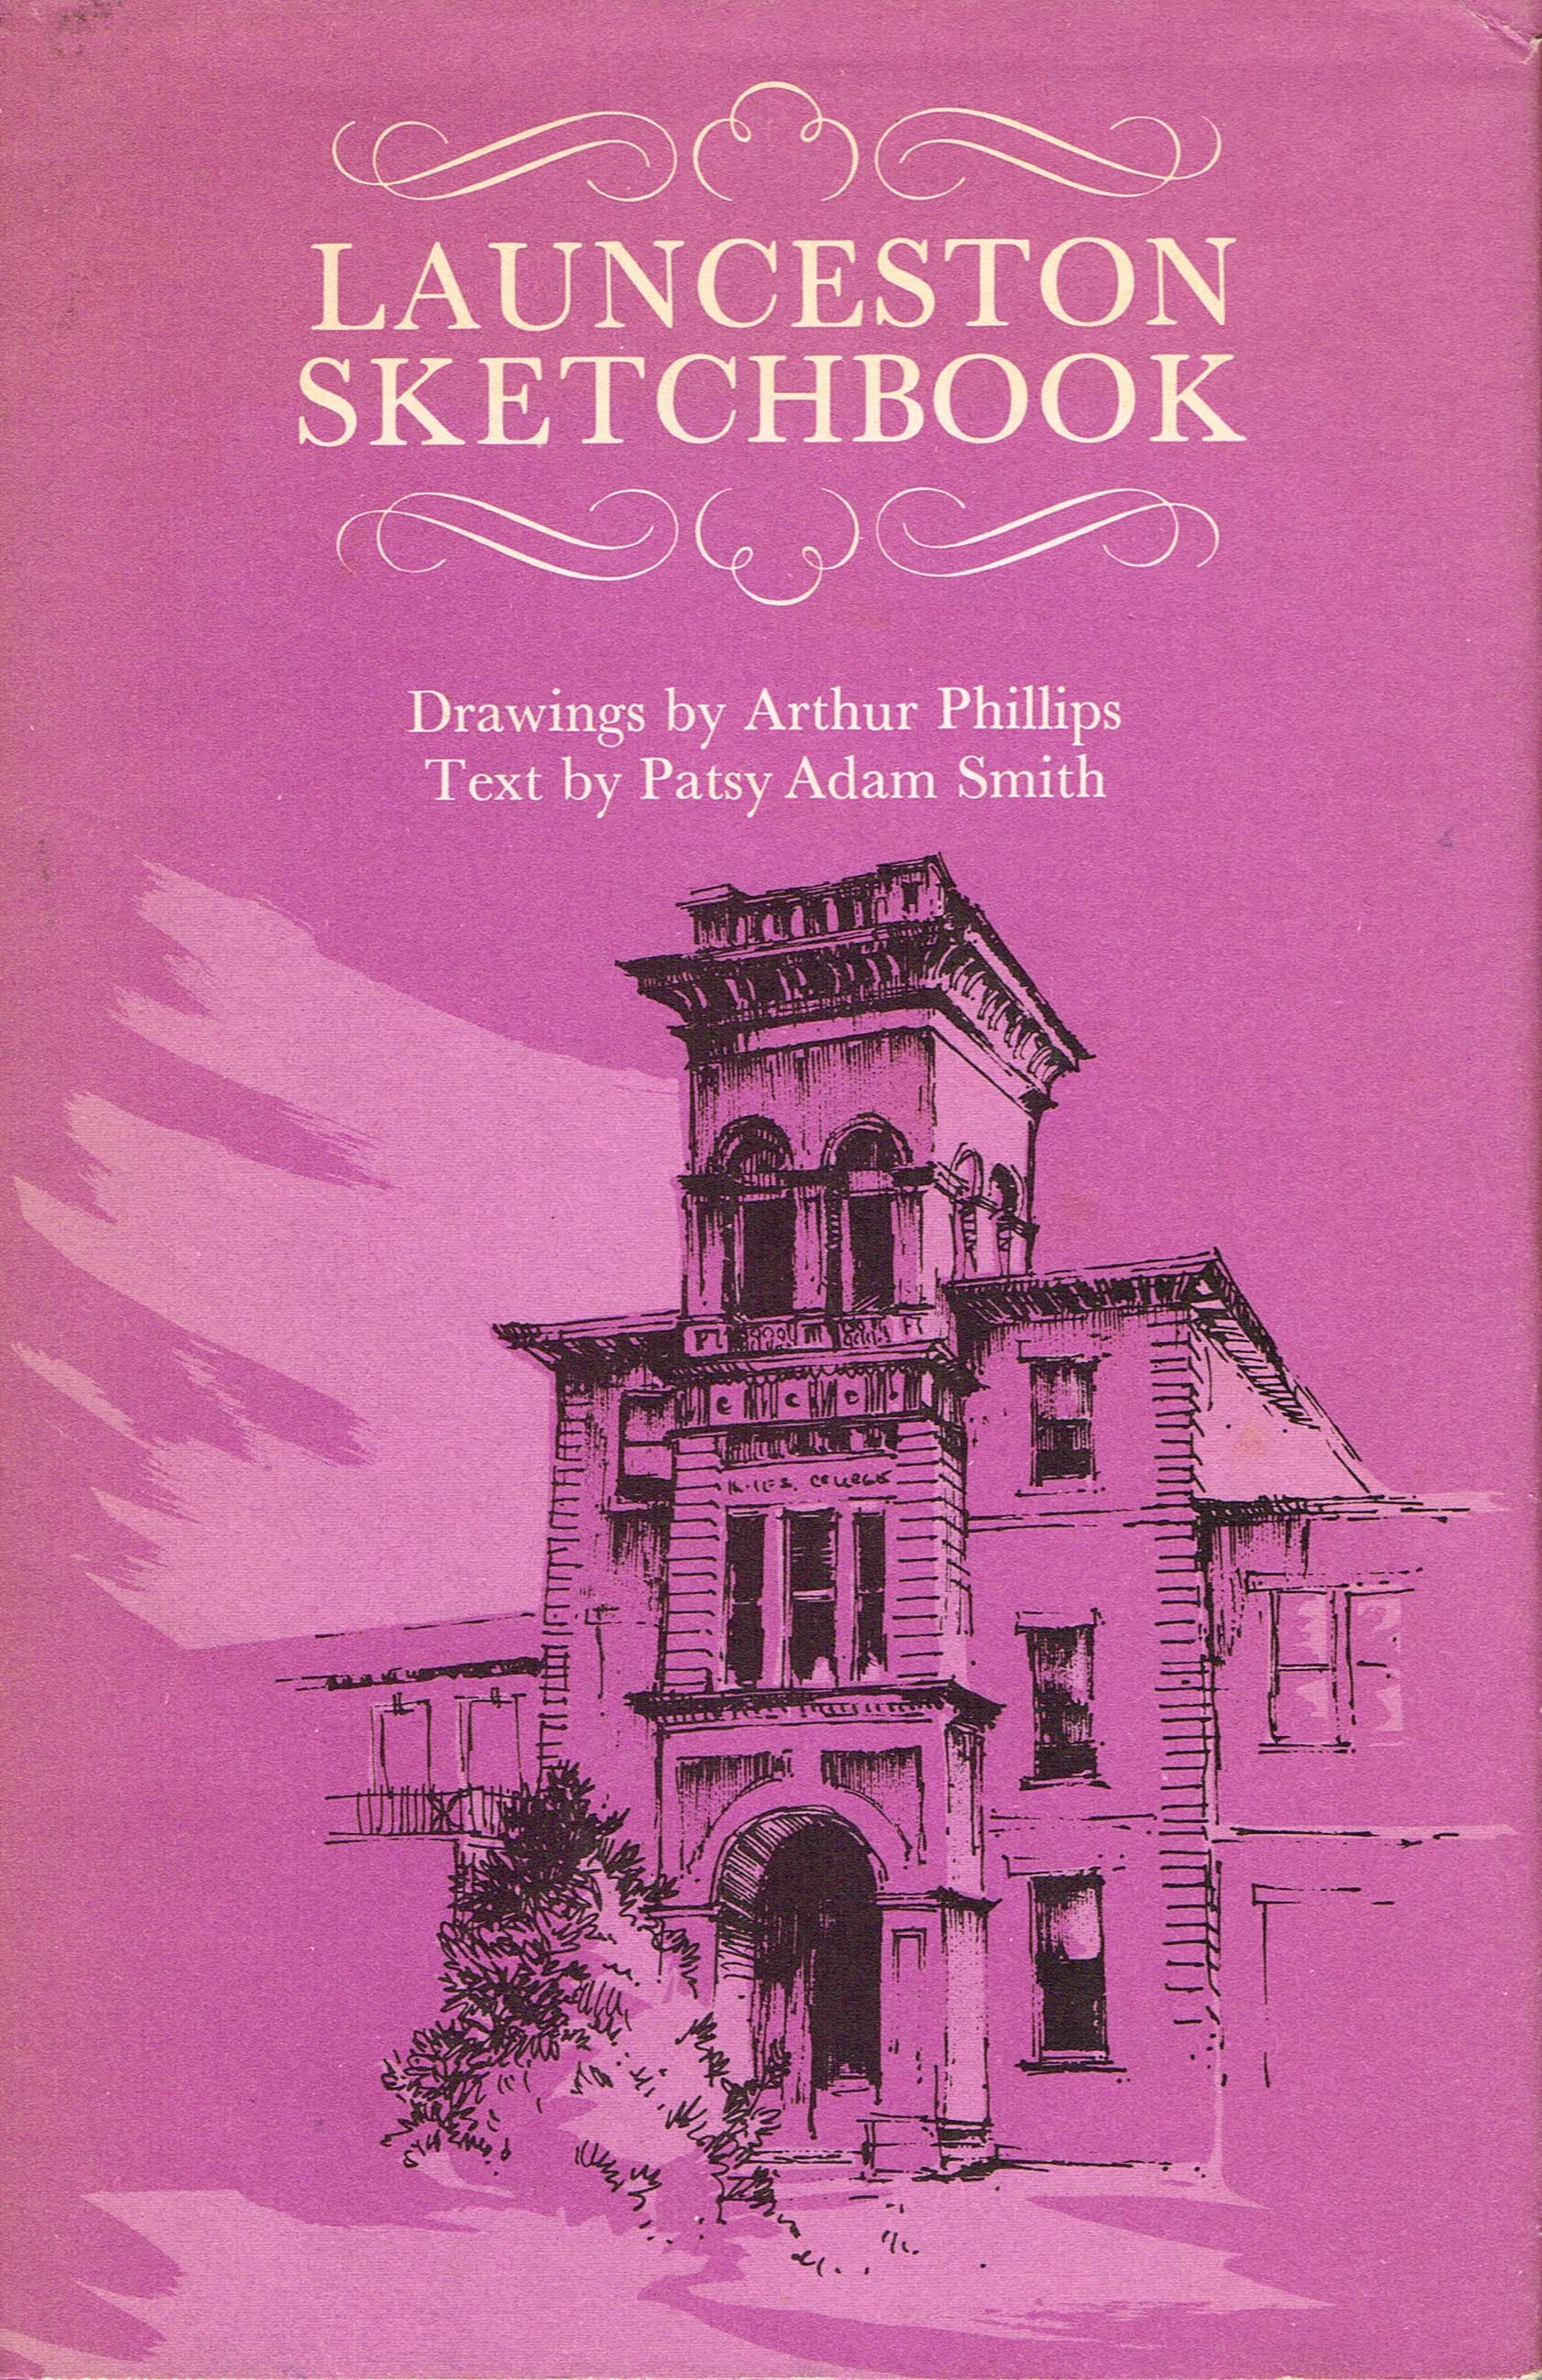 Launceston Sketchbook  Drawings by Arthur Phillips, text by Patsy Adam Smith